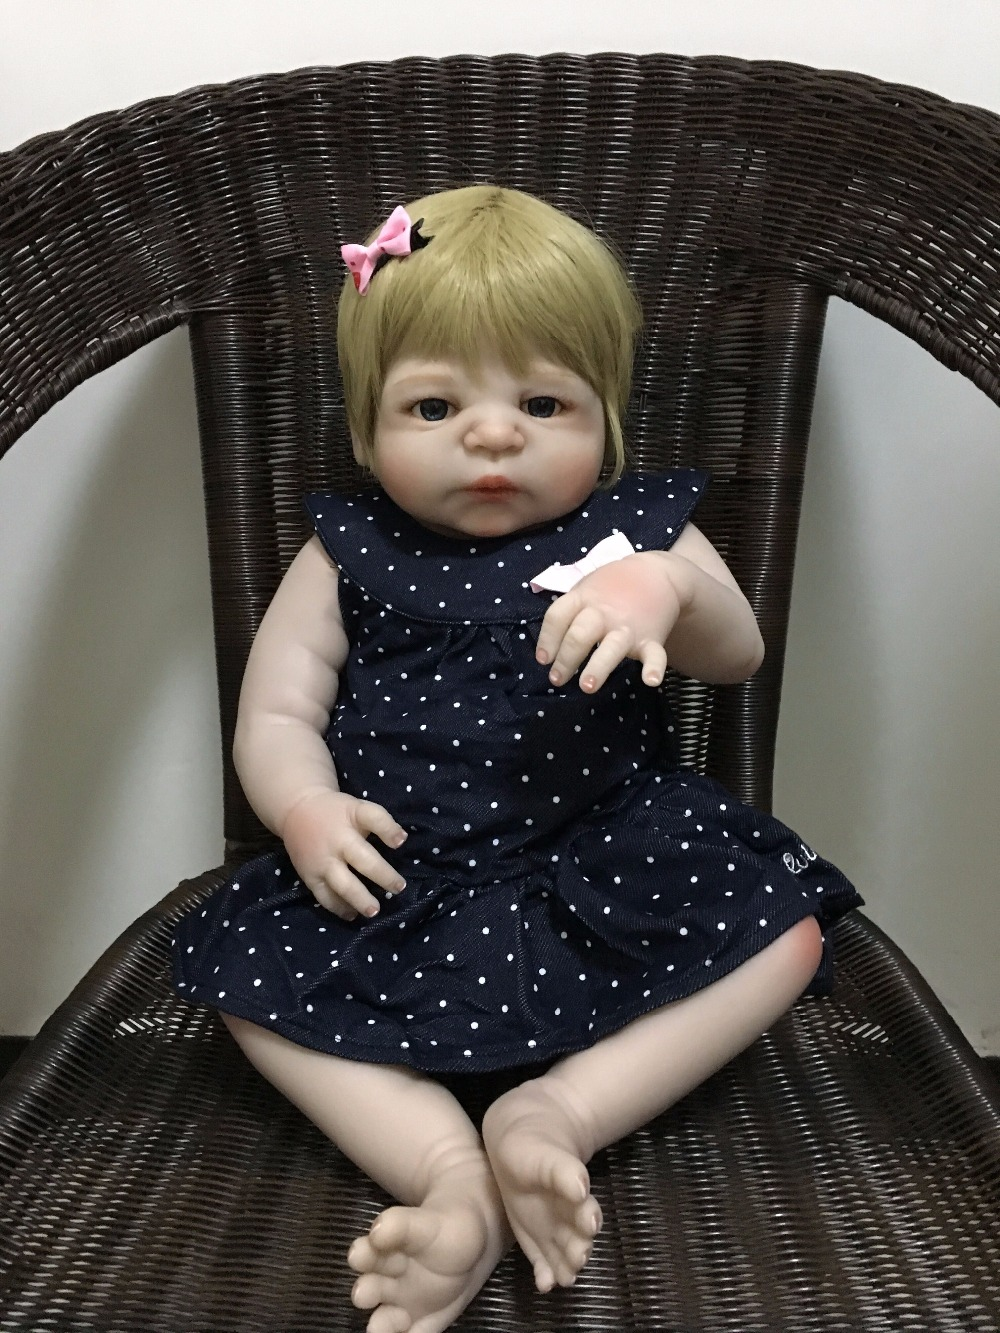 55cm Full Body Silicone Reborn Baby Doll Toys 22inch Vinyl Newborn Princess Toddler Girls Babies Doll Bathe Toy Birthday Gift 18 inch sd bjd classical victoria lolita aesthetic style ball jointed doll full vinyl baby toy brinquedo kids birthday xmas gift